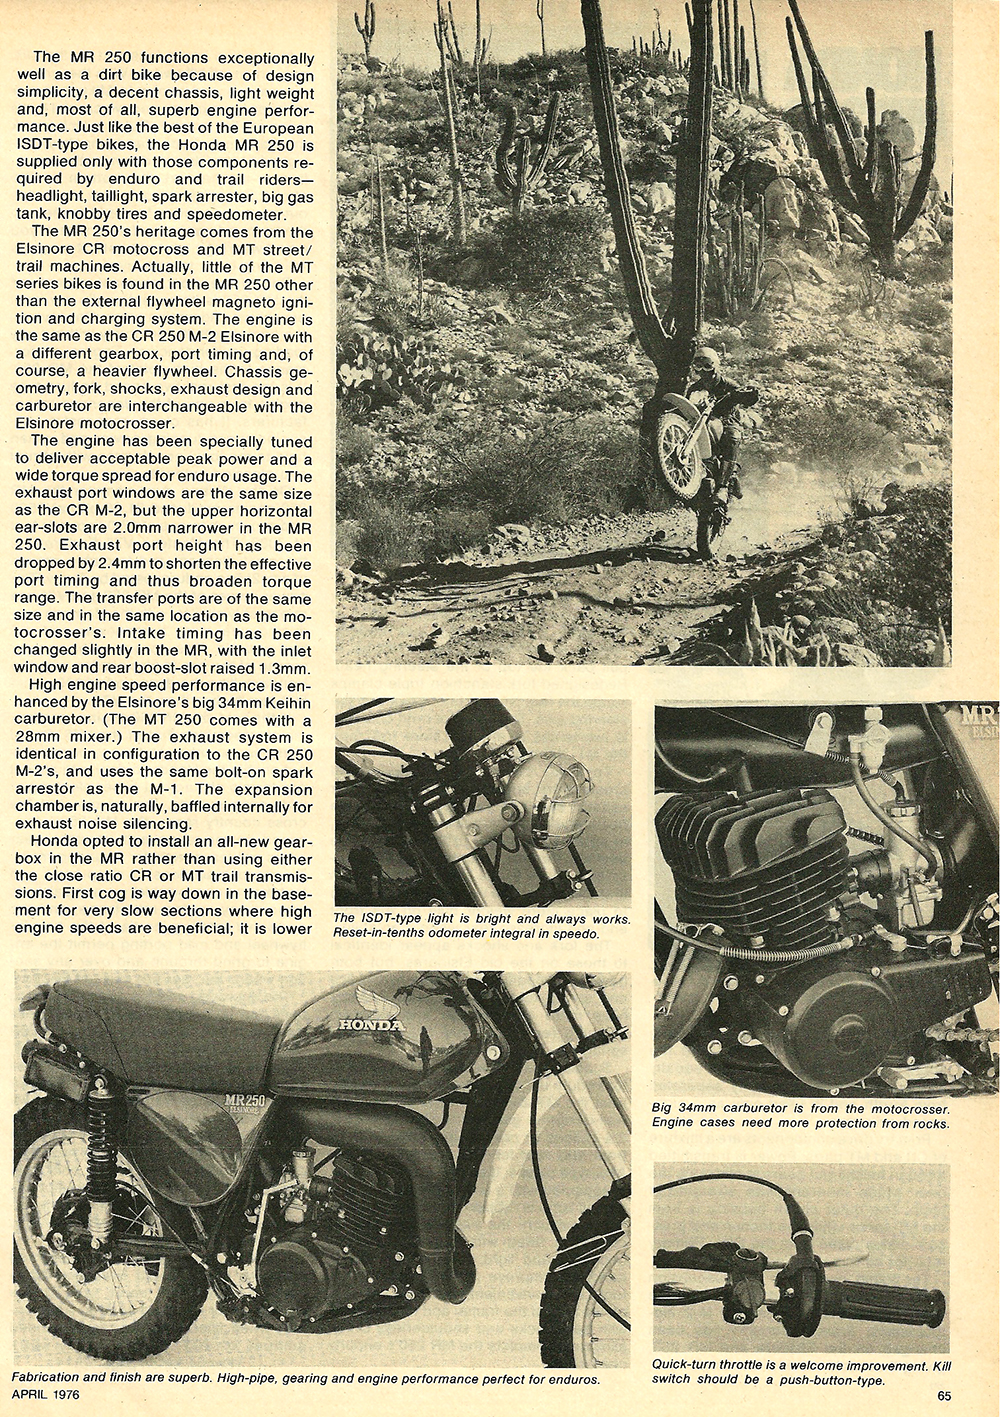 1976 Honda MR250 enduro road test 4.jpg